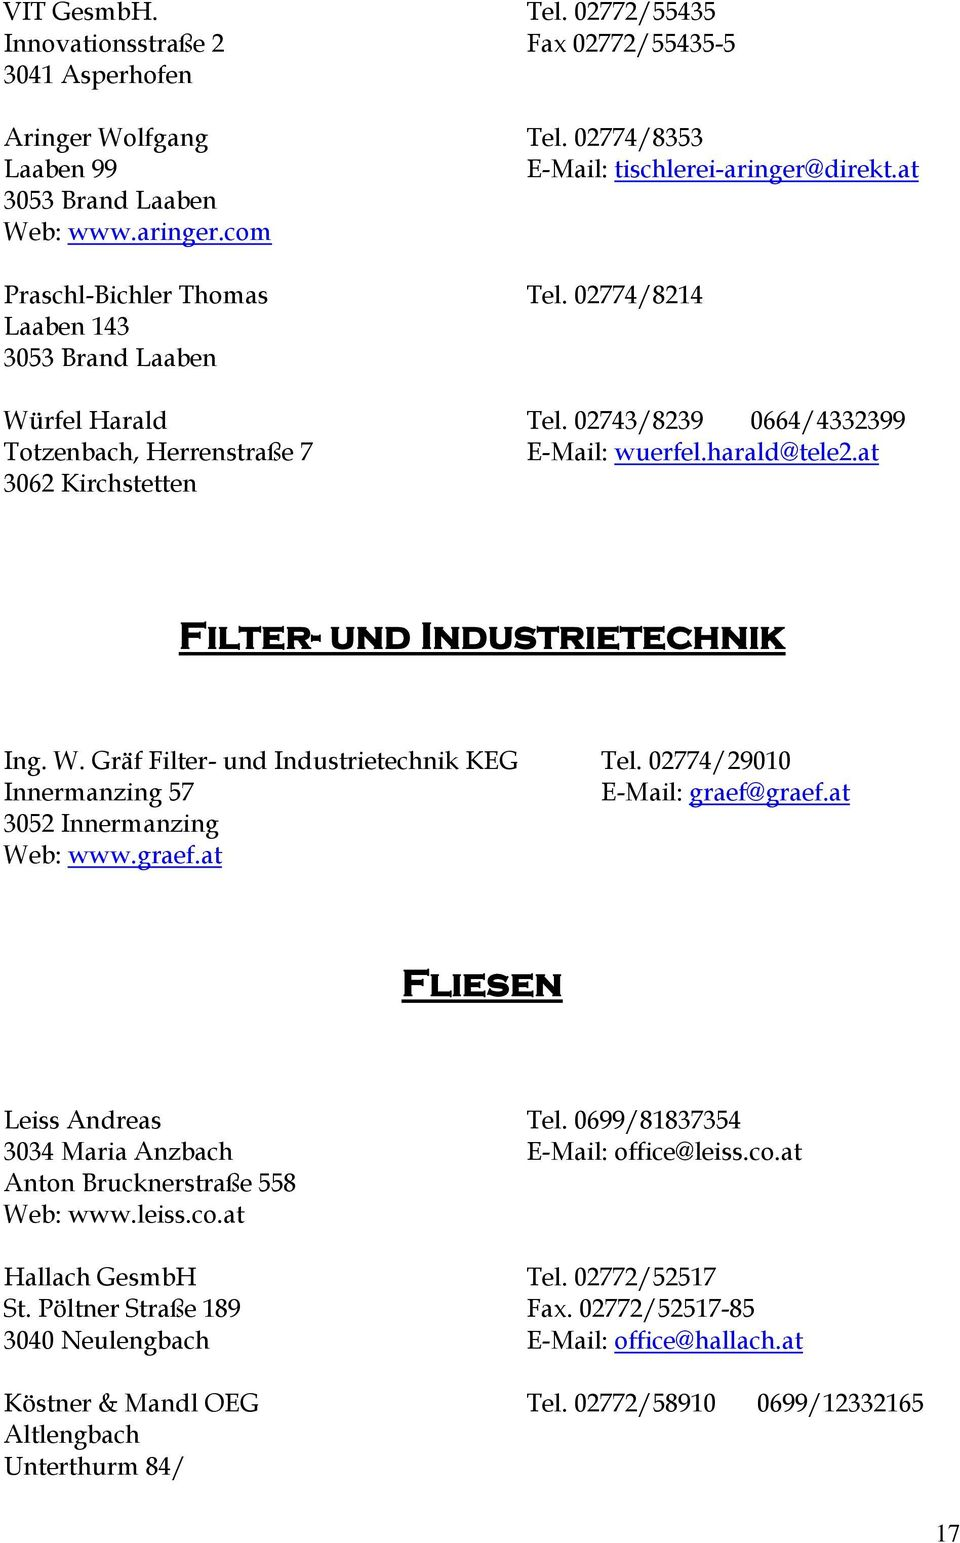 02774/29010 Innermanzing 57 E-Mail: graef@graef.at 3052 Innermanzing Web: www.graef.at Fliesen Leiss Andreas Tel. 0699/81837354 3034 Maria Anzbach E-Mail: office@leiss.co.